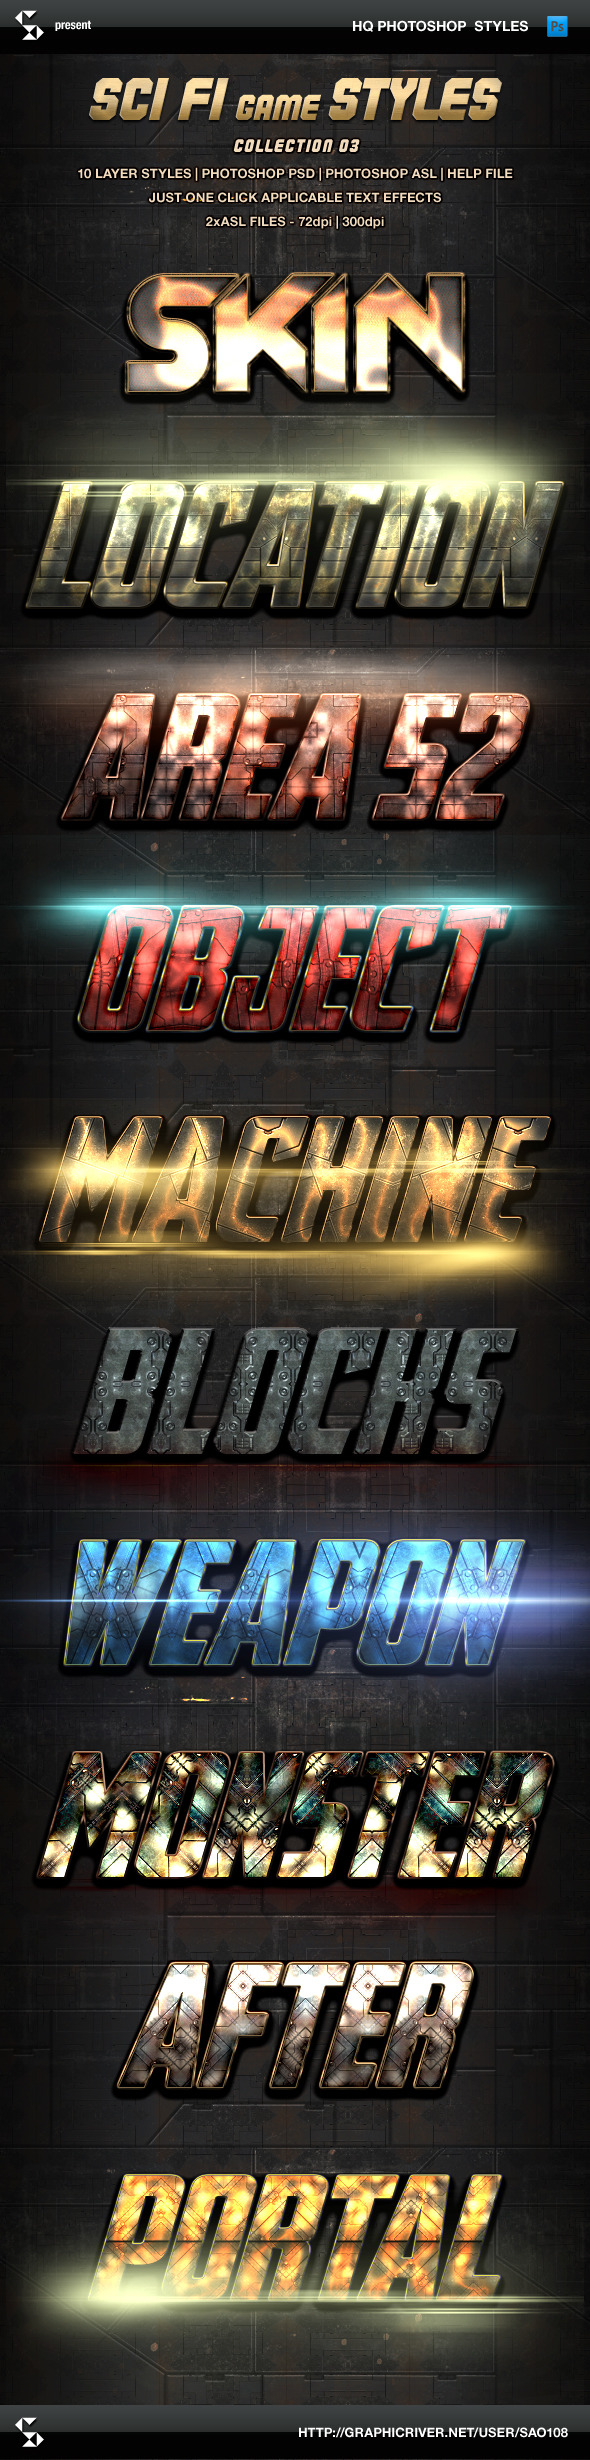 Sci-fi Game Styles - Collection 3 - Text Effects Styles